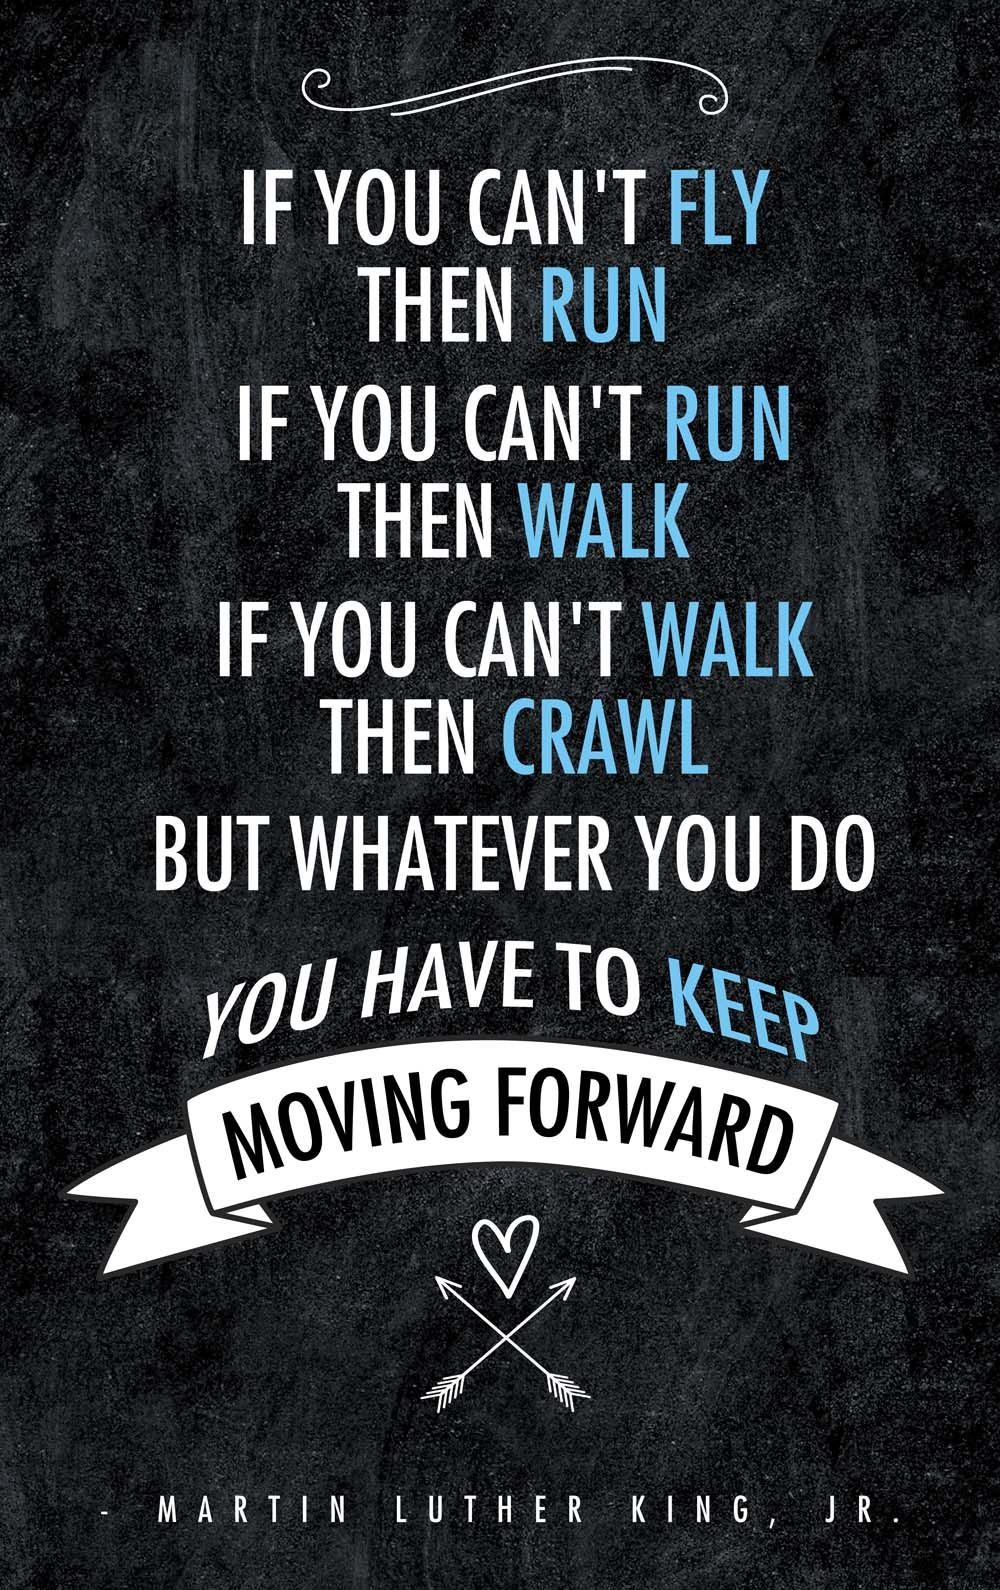 Move Forward Quotes Fascinating Keep Moving Forward #quote #martinlutherking  Inspiration Quotes